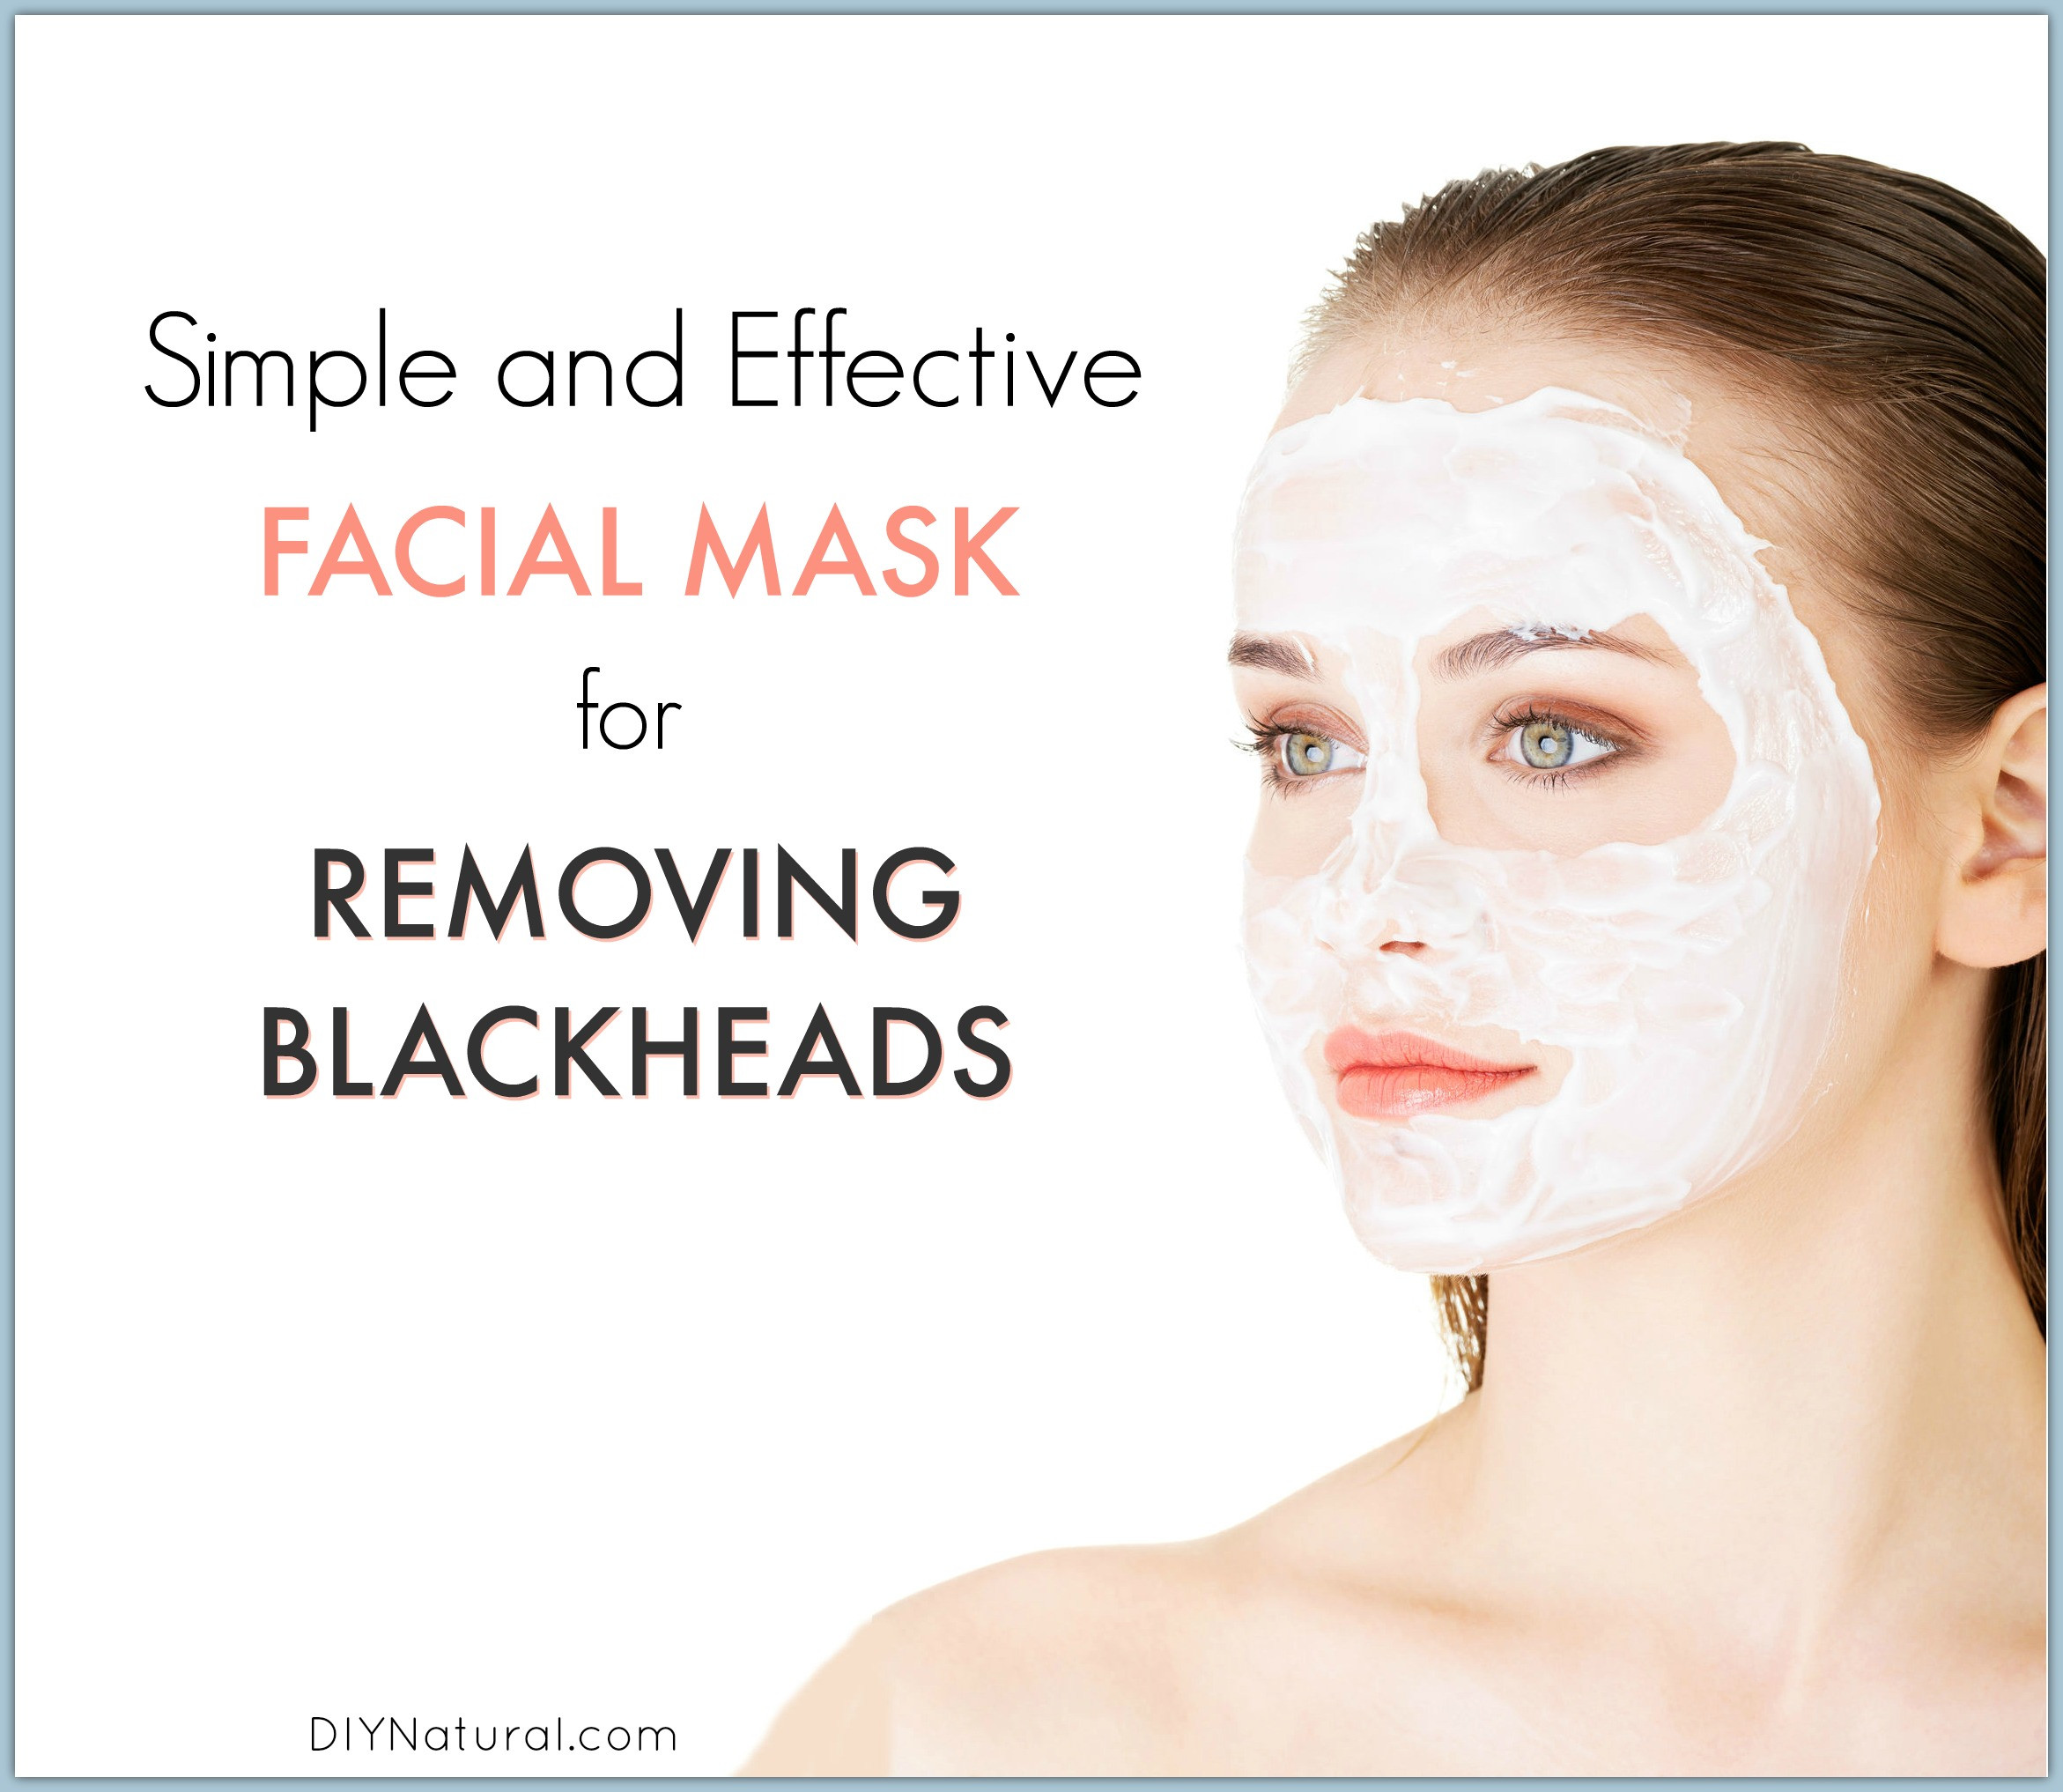 Best ideas about Blackhead Mask DIY . Save or Pin Blackheads A Quick and Easy Homemade Blackhead Mask Now.